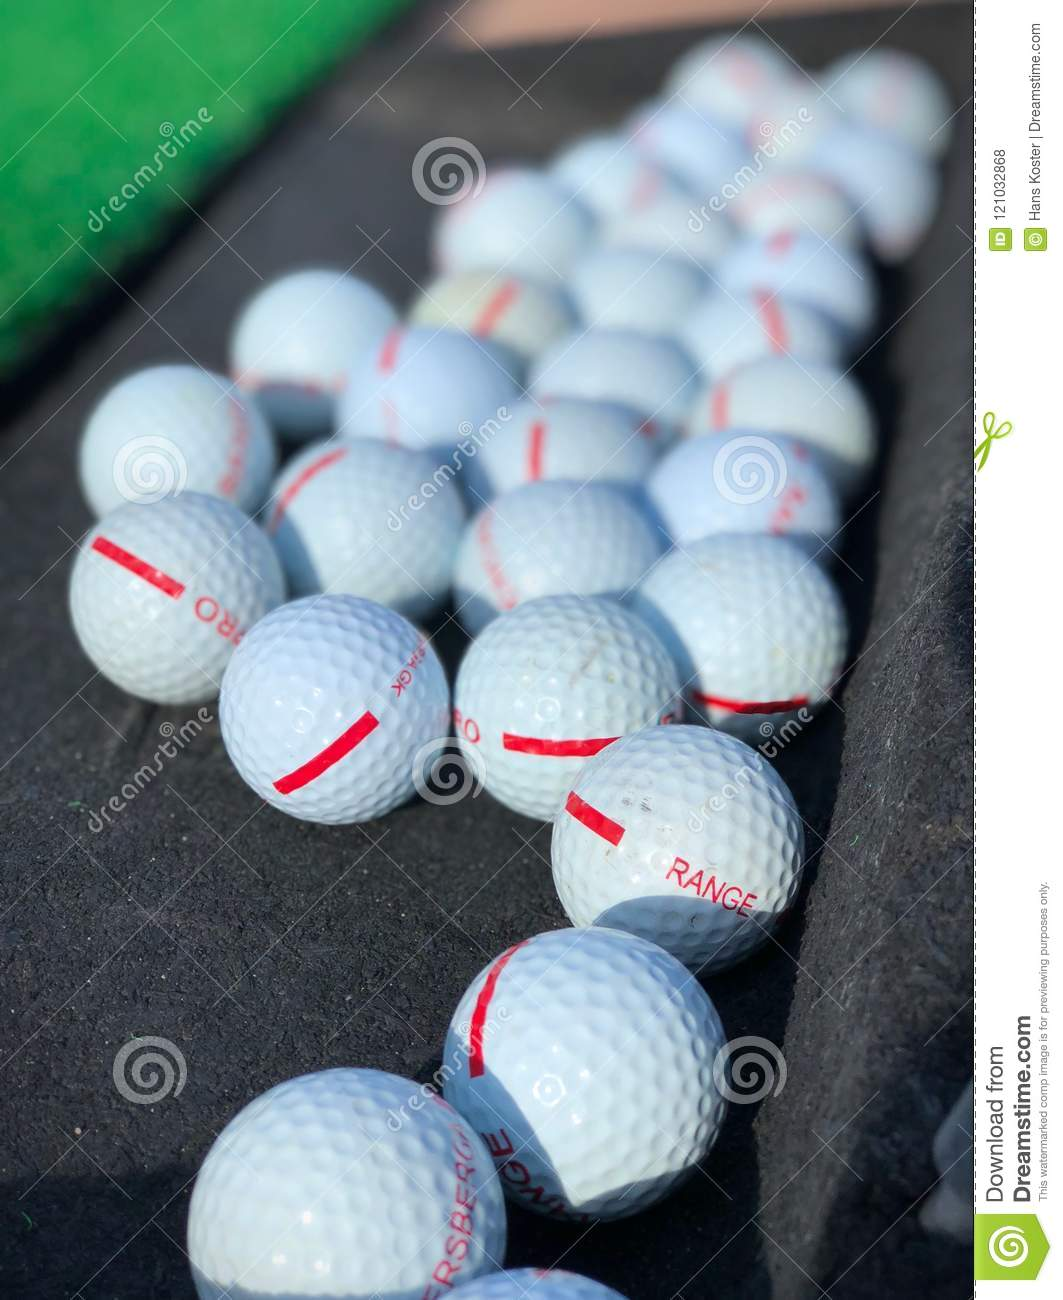 Golf balls on driving range ready to hit off